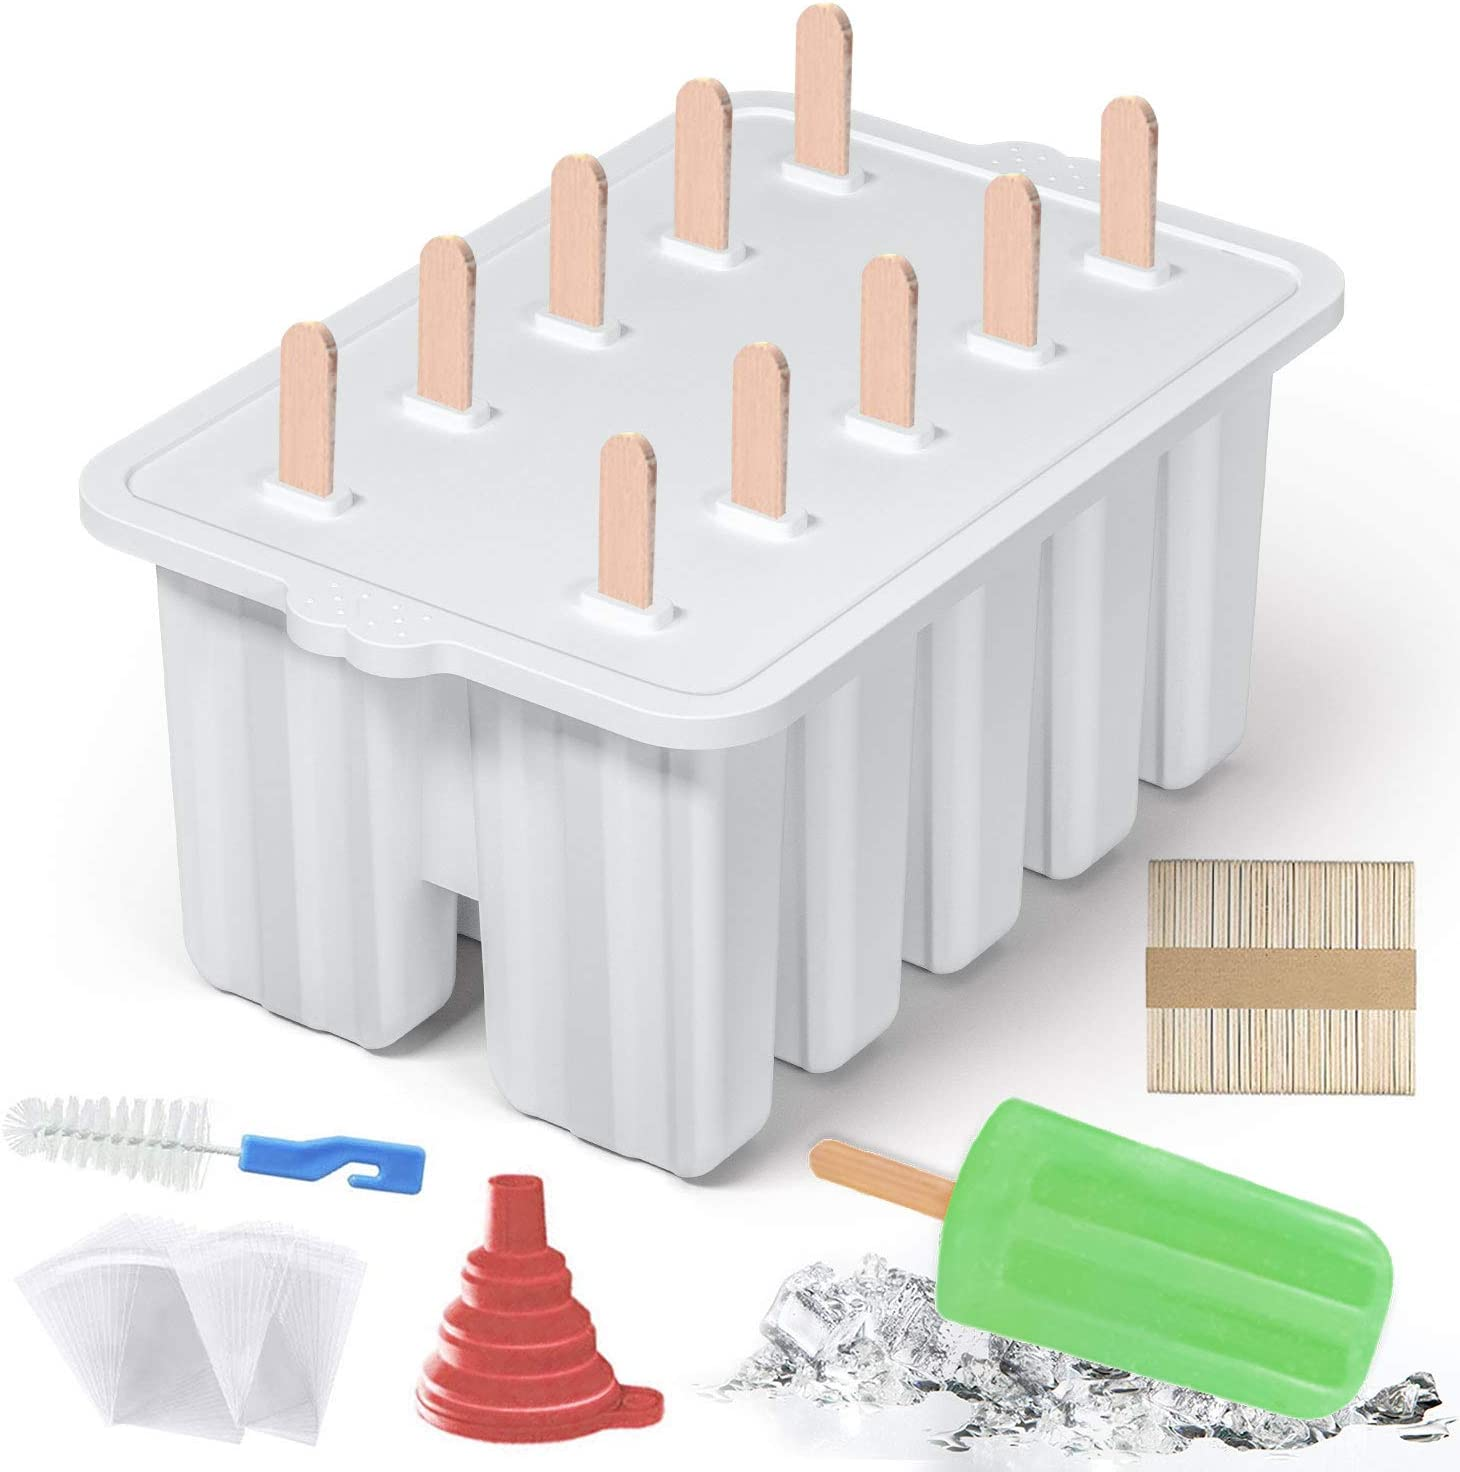 10 Cavities Homemade Popsicle Molds Set , Food Grade Silicone Frozen Ice Popsicle Maker-BPA Free, Contain 50 Popsicle Sticks, 50 Popsicle Bags Popsicle Mold Silicone Popcycle Mold(White)